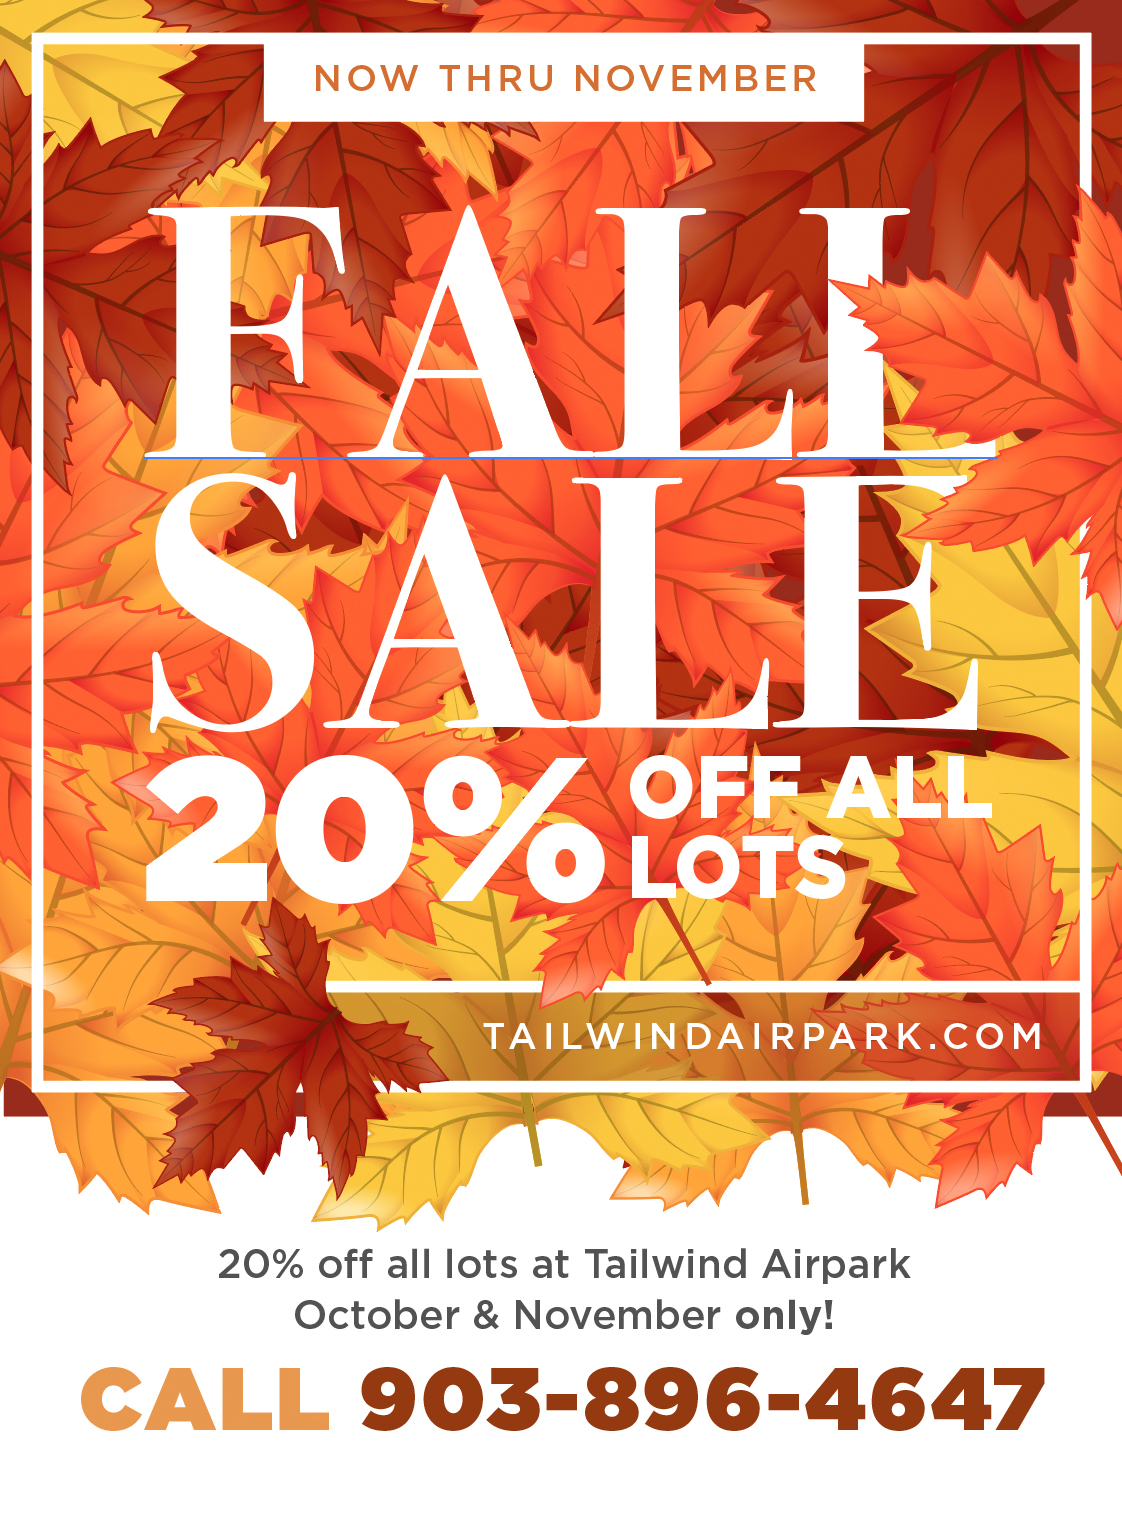 Up to 20% off all lots - Oct & Nov only!